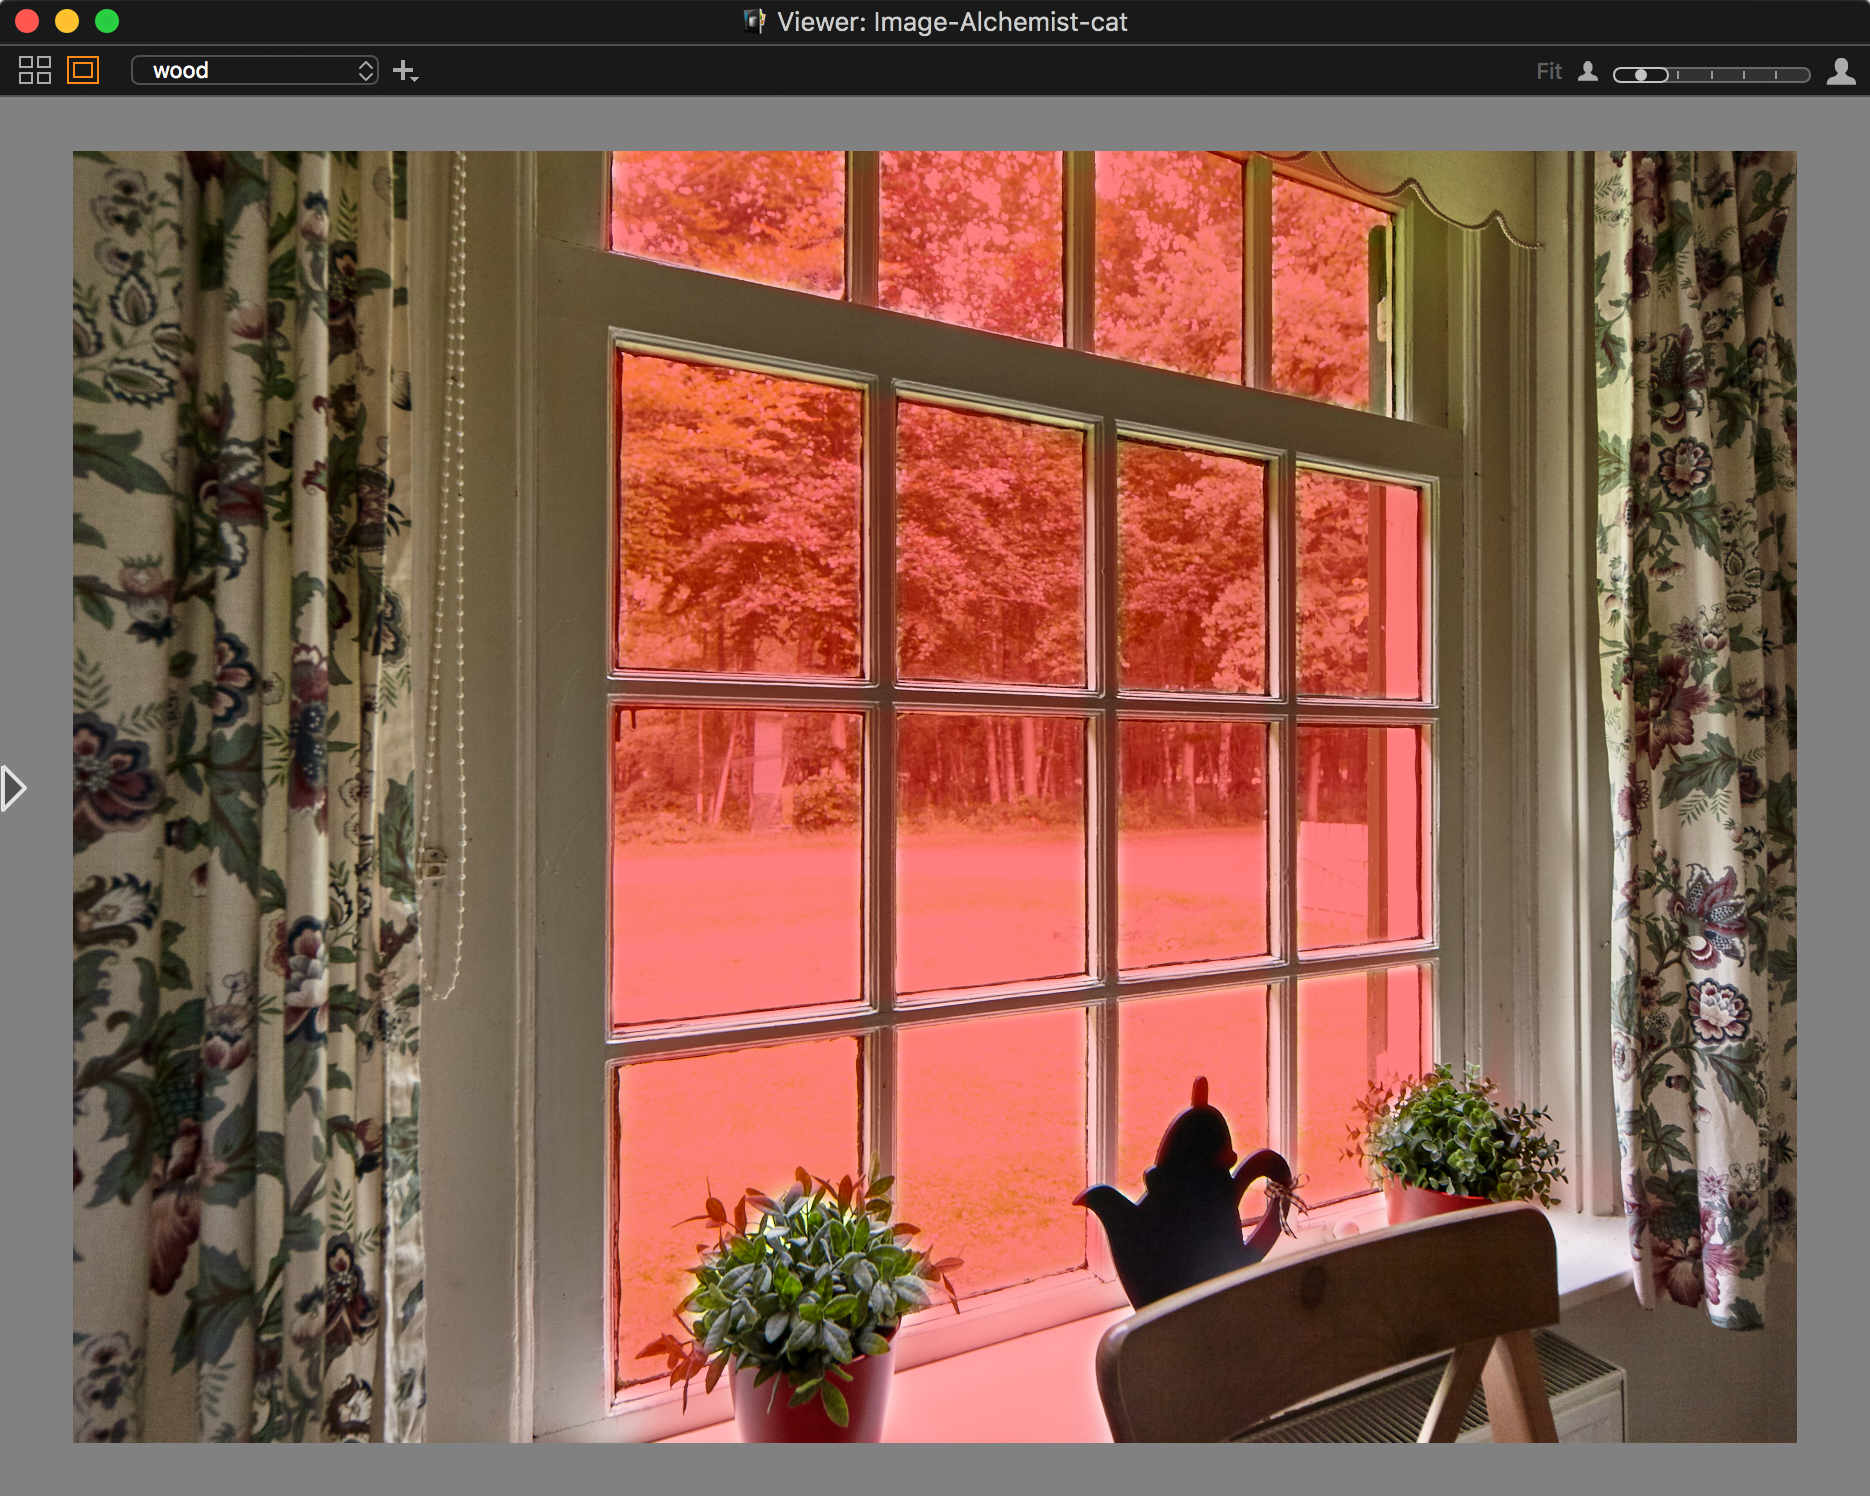 capture one layers explained, mask layer 1